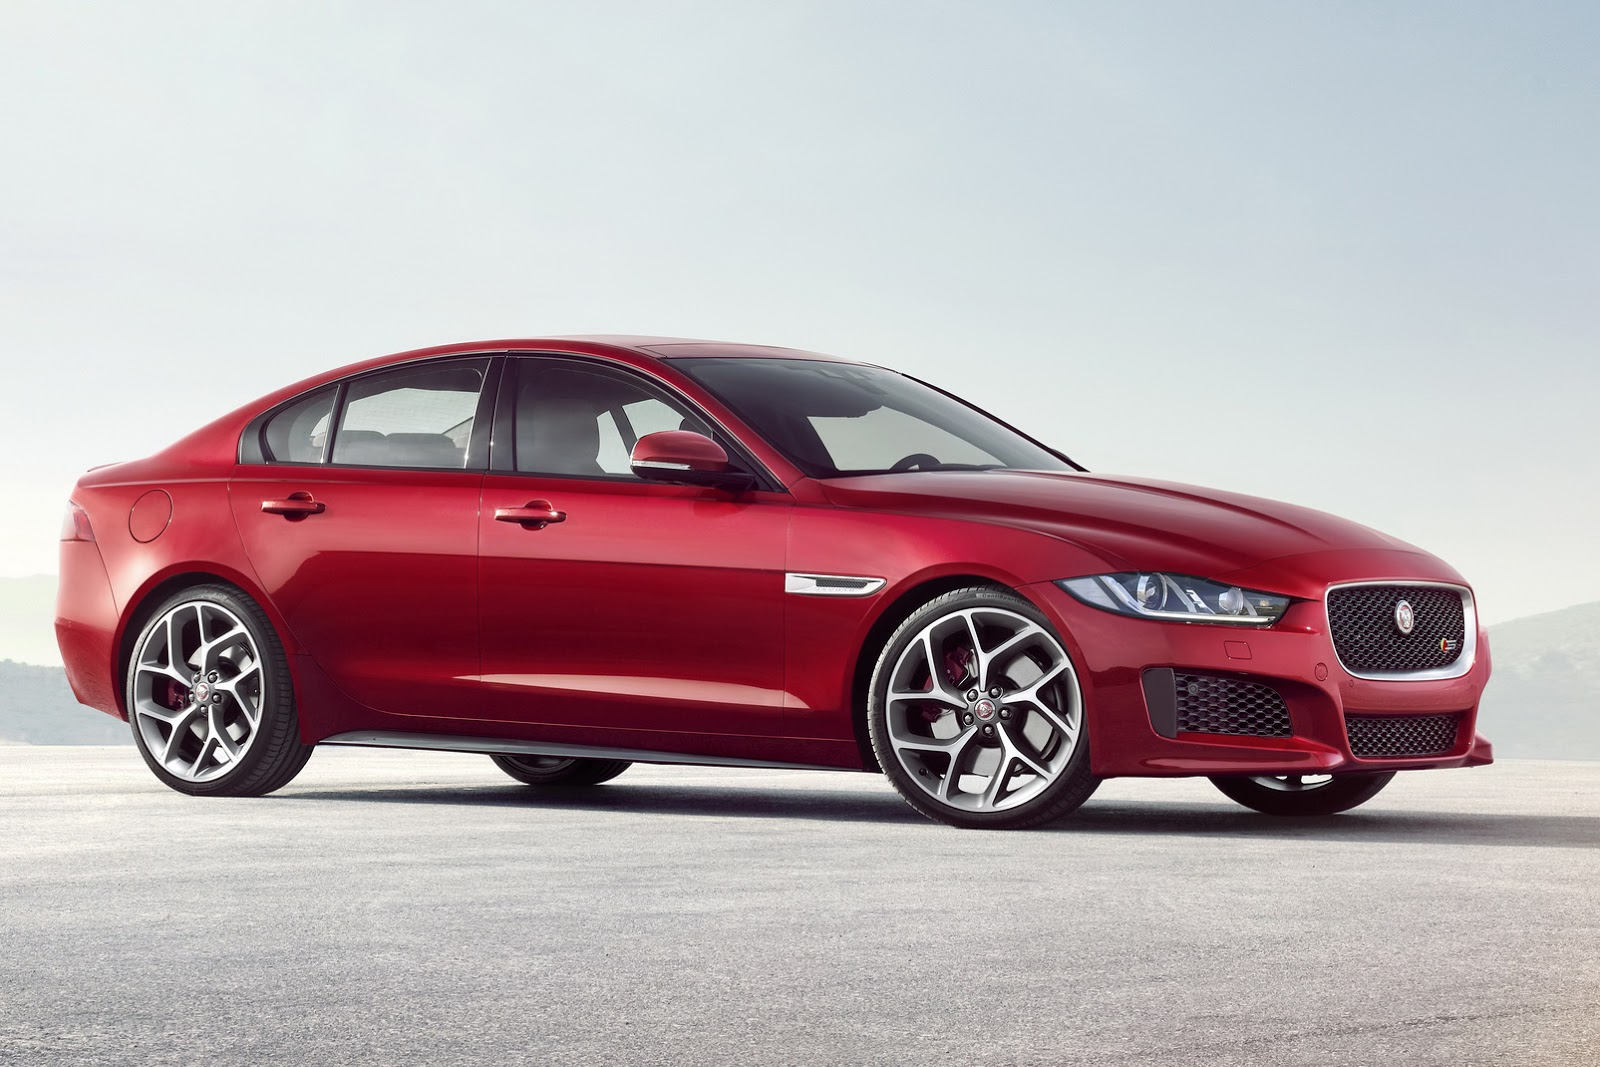 New 2016 Jaguar XE officially revealed Images and details (31)